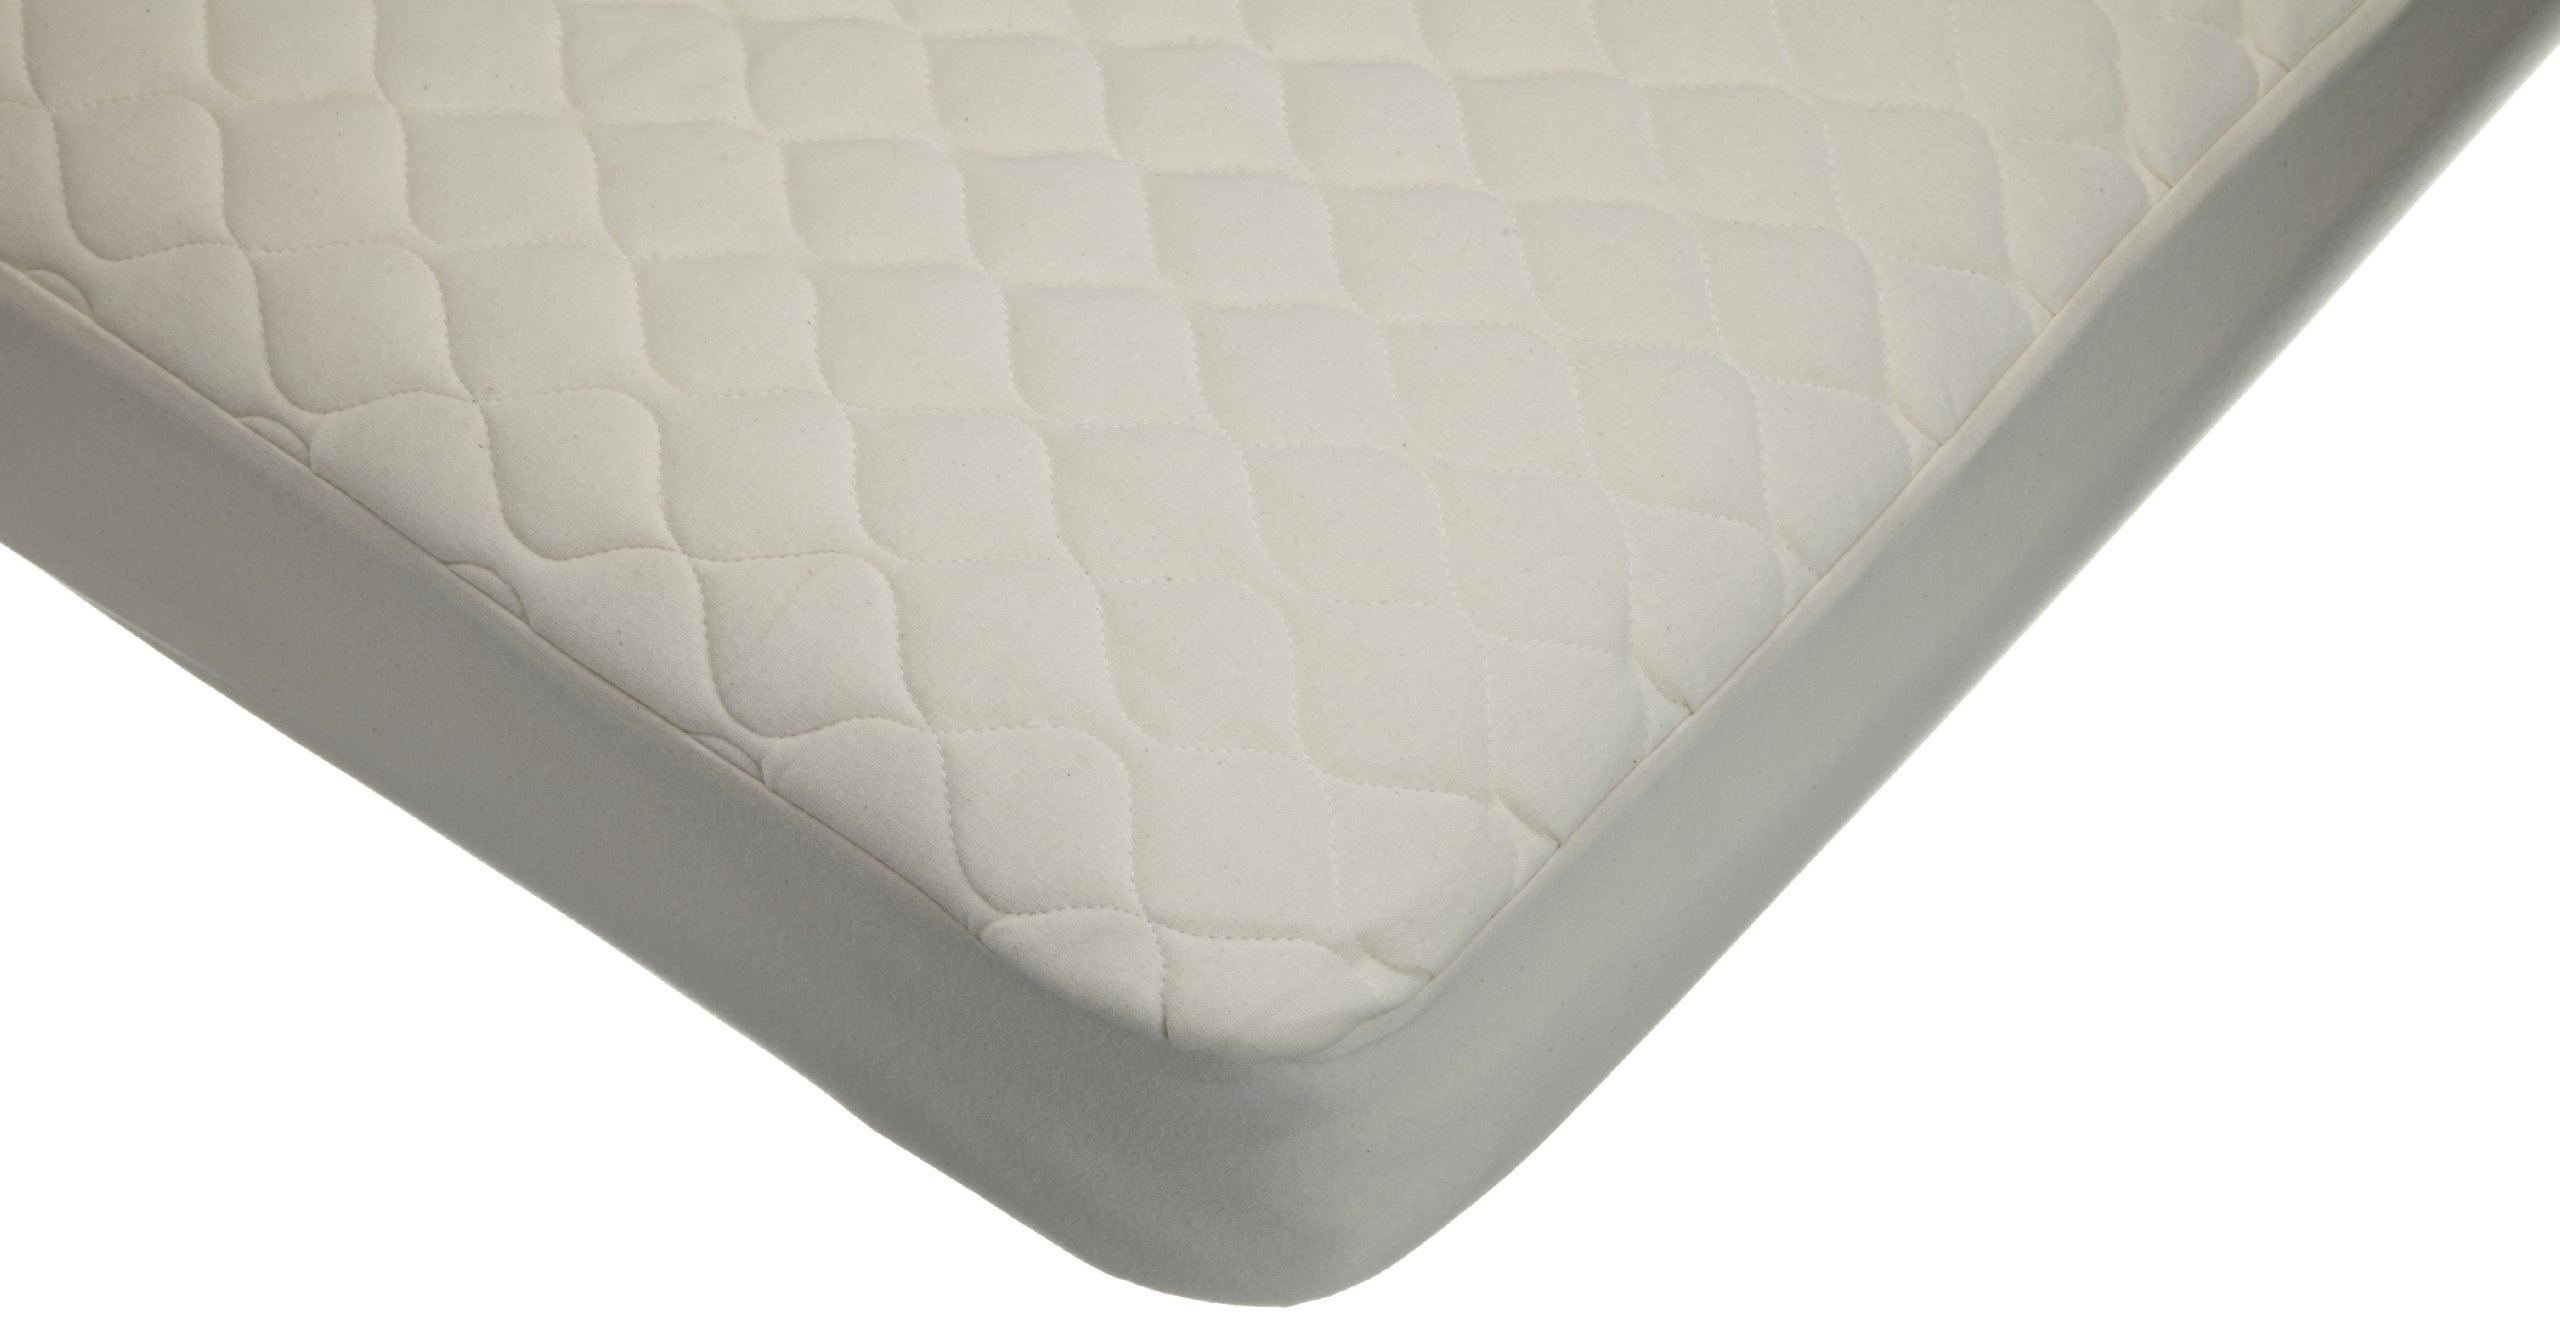 American Baby Company Waterproof Quilted CribandToddlerSize Fitted Mattress Cover made with Organic Cotton, Natural Color by American Baby Company